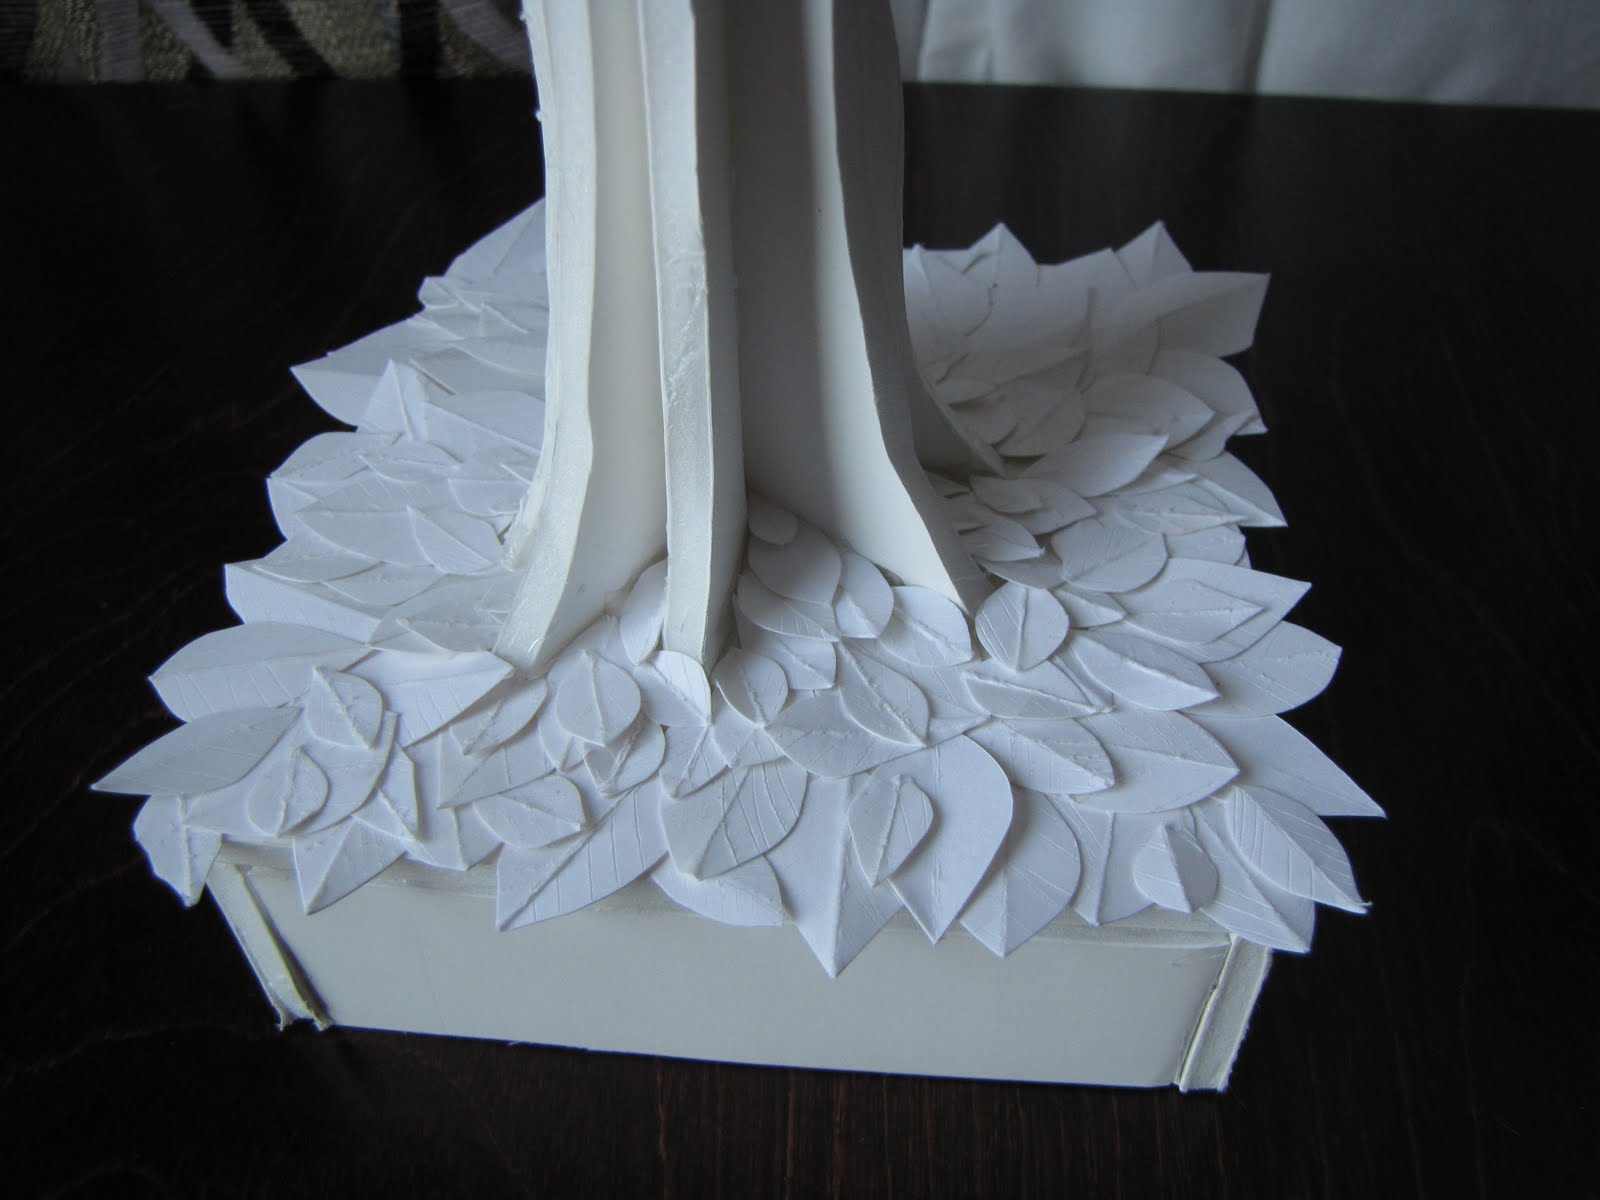 Sculptures foam core board pictures to pin on pinterest